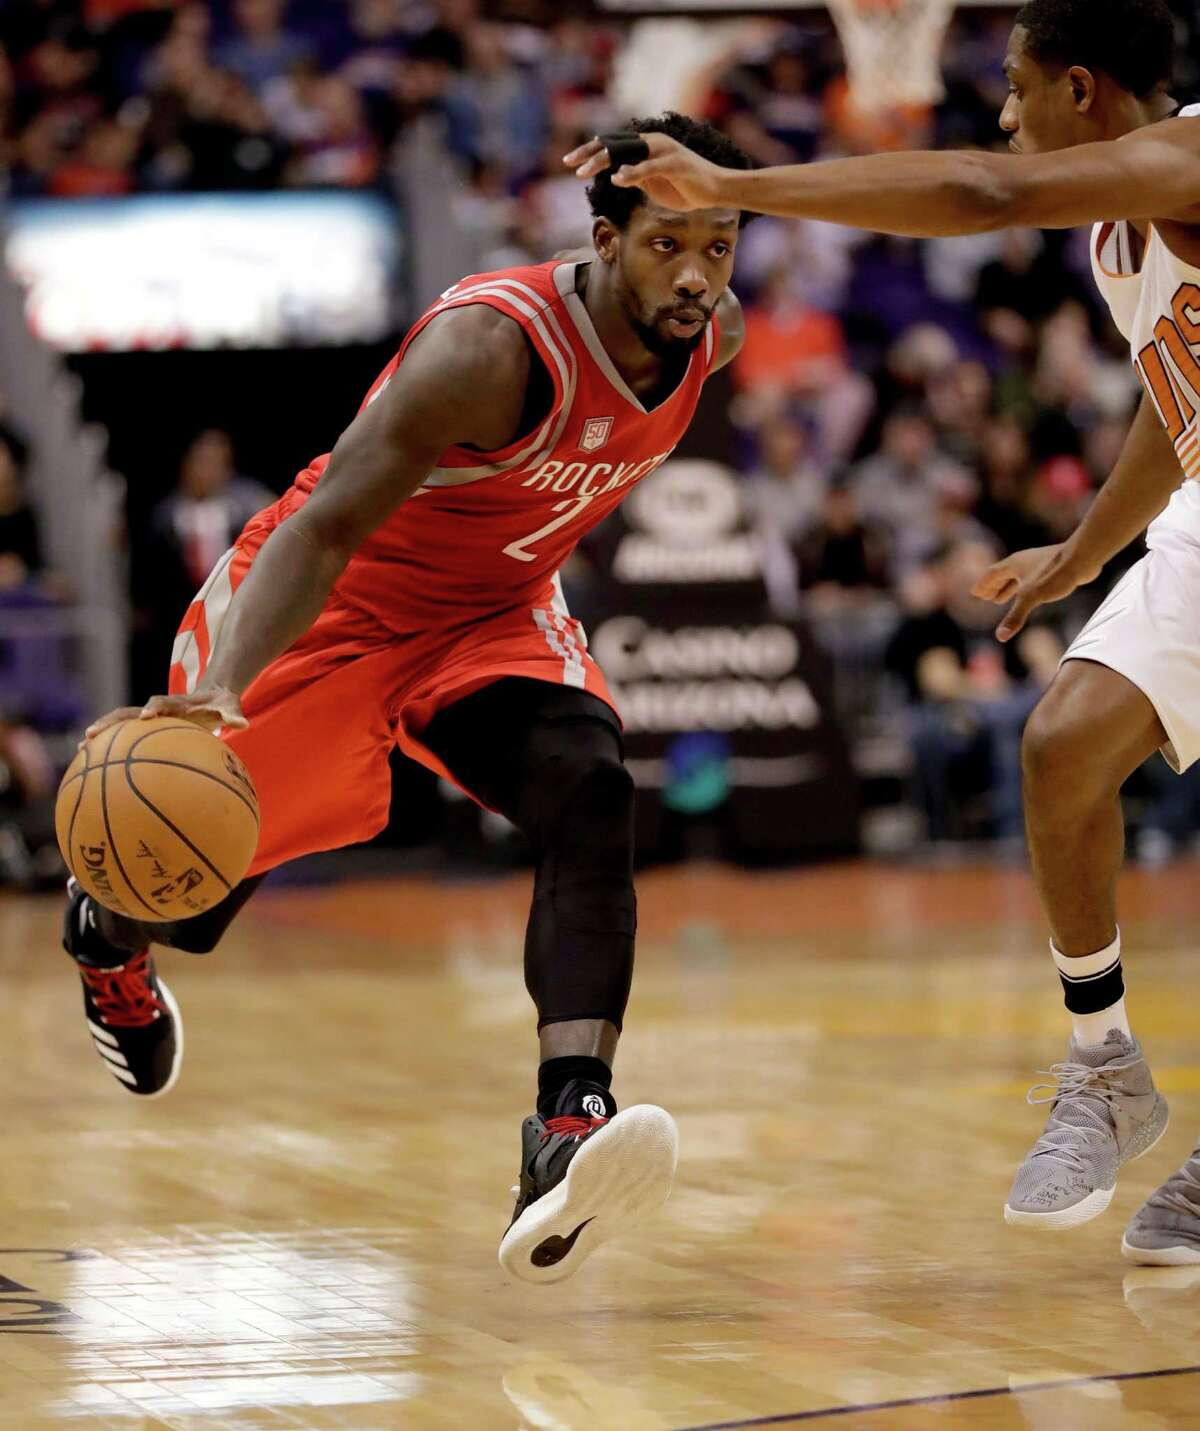 Houston Rockets guard Patrick Beverley (2) drives past Phoenix Suns guard Brandon Knight during the first half of an NBA basketball game, Wednesday, Dec. 21, 2016, in Phoenix. (AP Photo/Matt York)